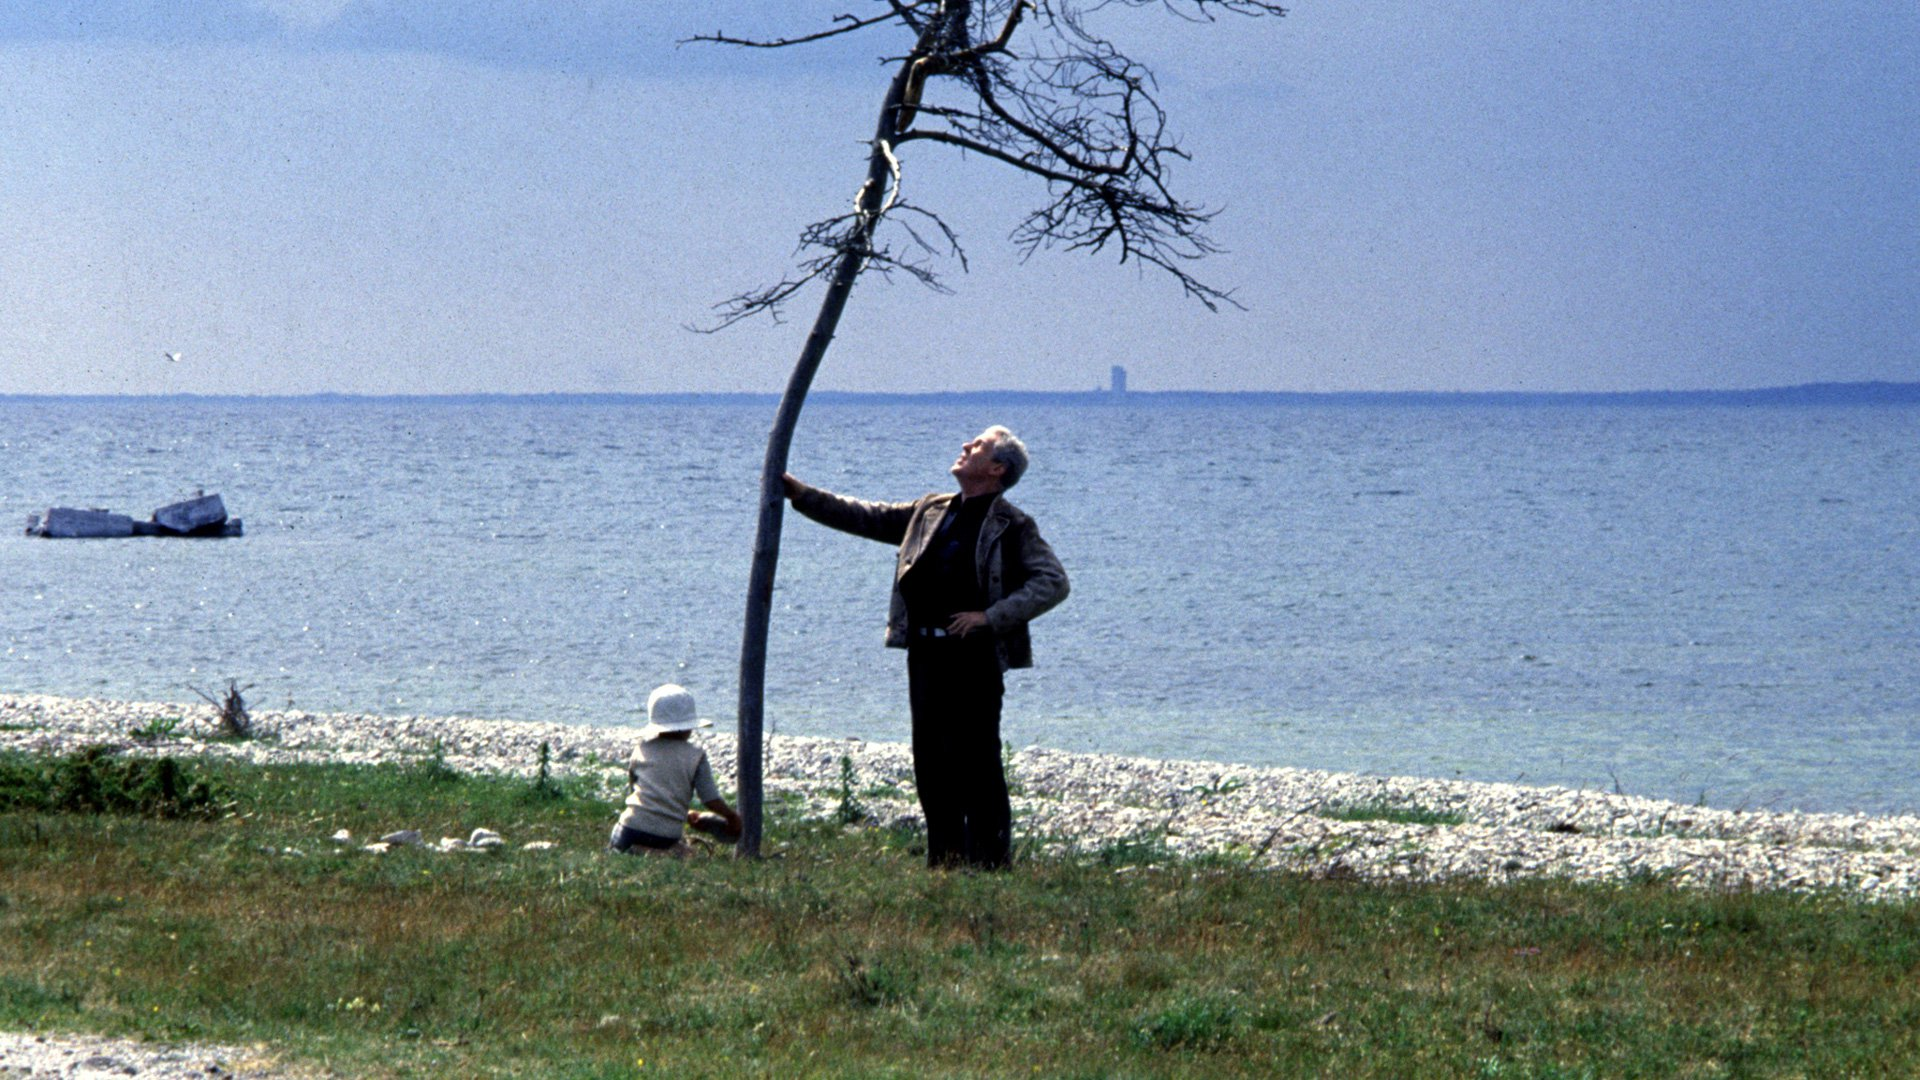 What to watch next after Tarkovsky